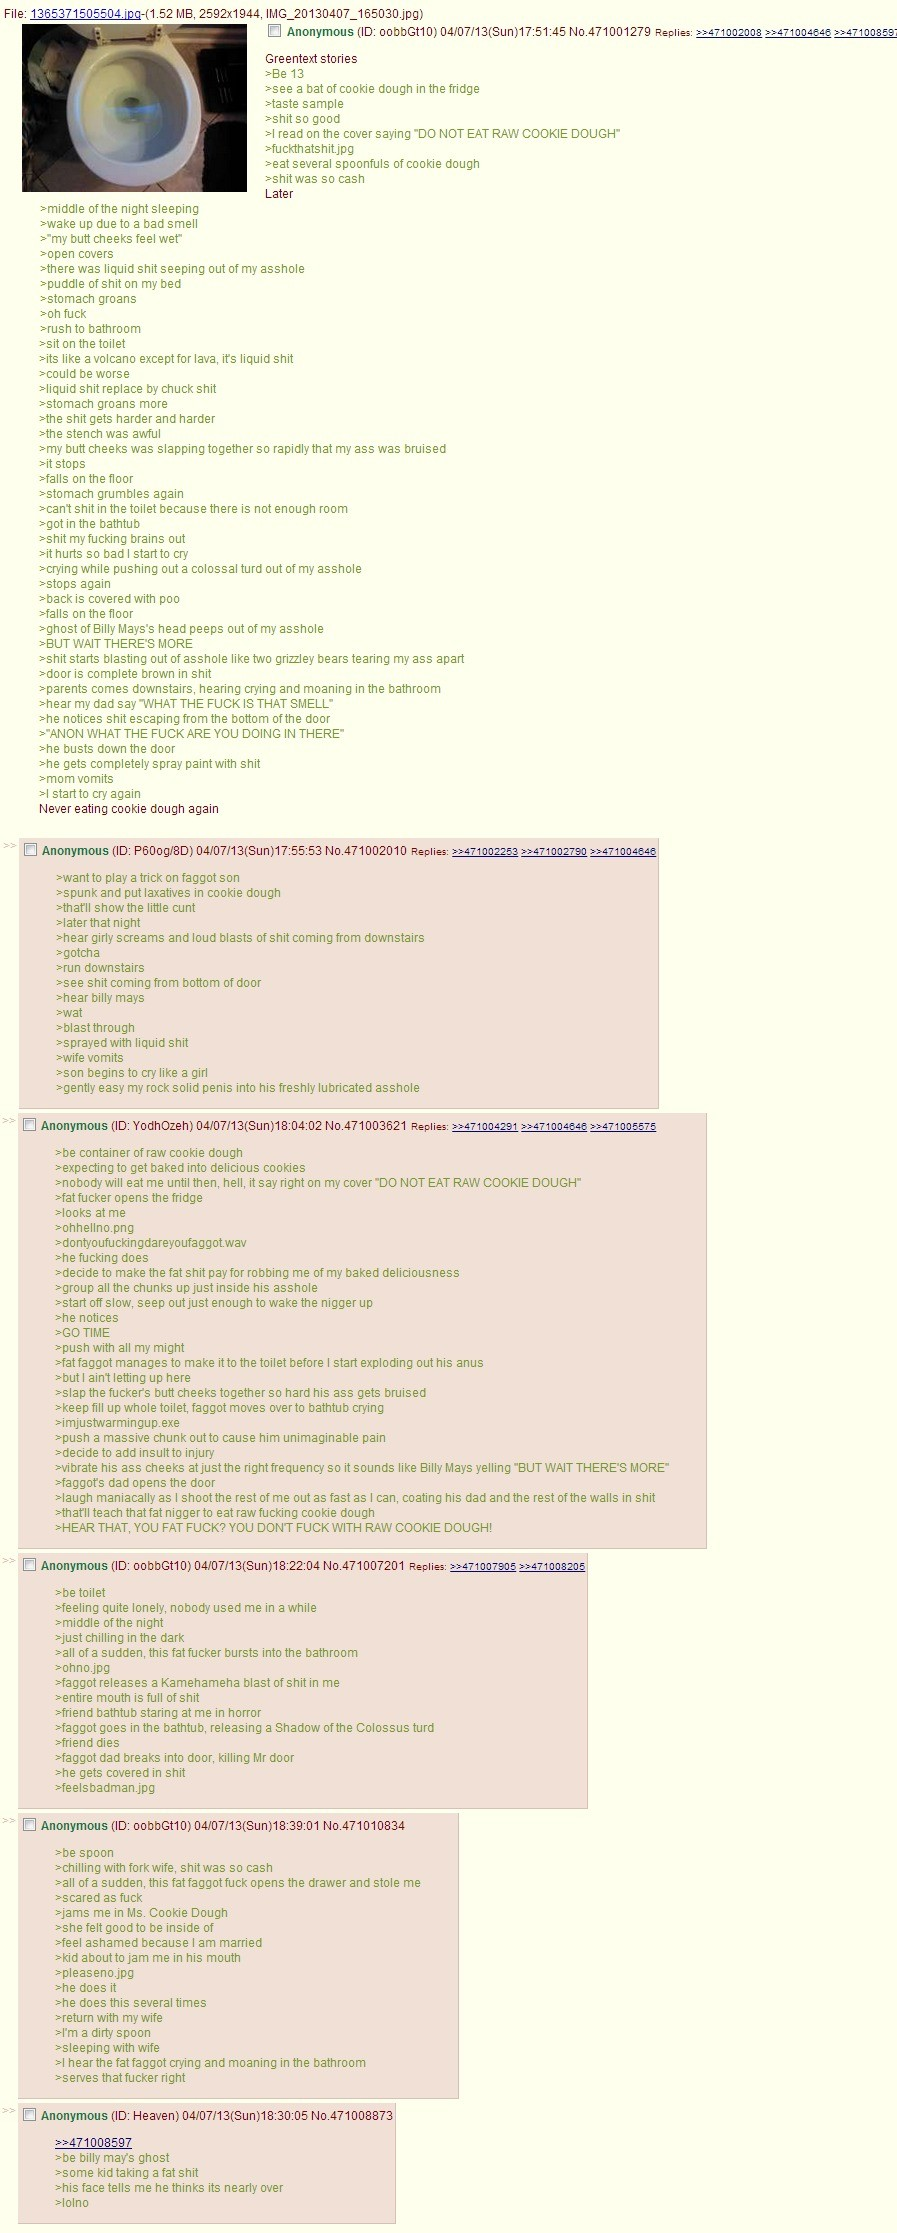 Anon eats cookie dough. Thanks to brantod for bringing to my knowledge this gem.. We 1365371505504 em 52 , _ 20130407_ Anonymous an Rams Greentext stones me 13